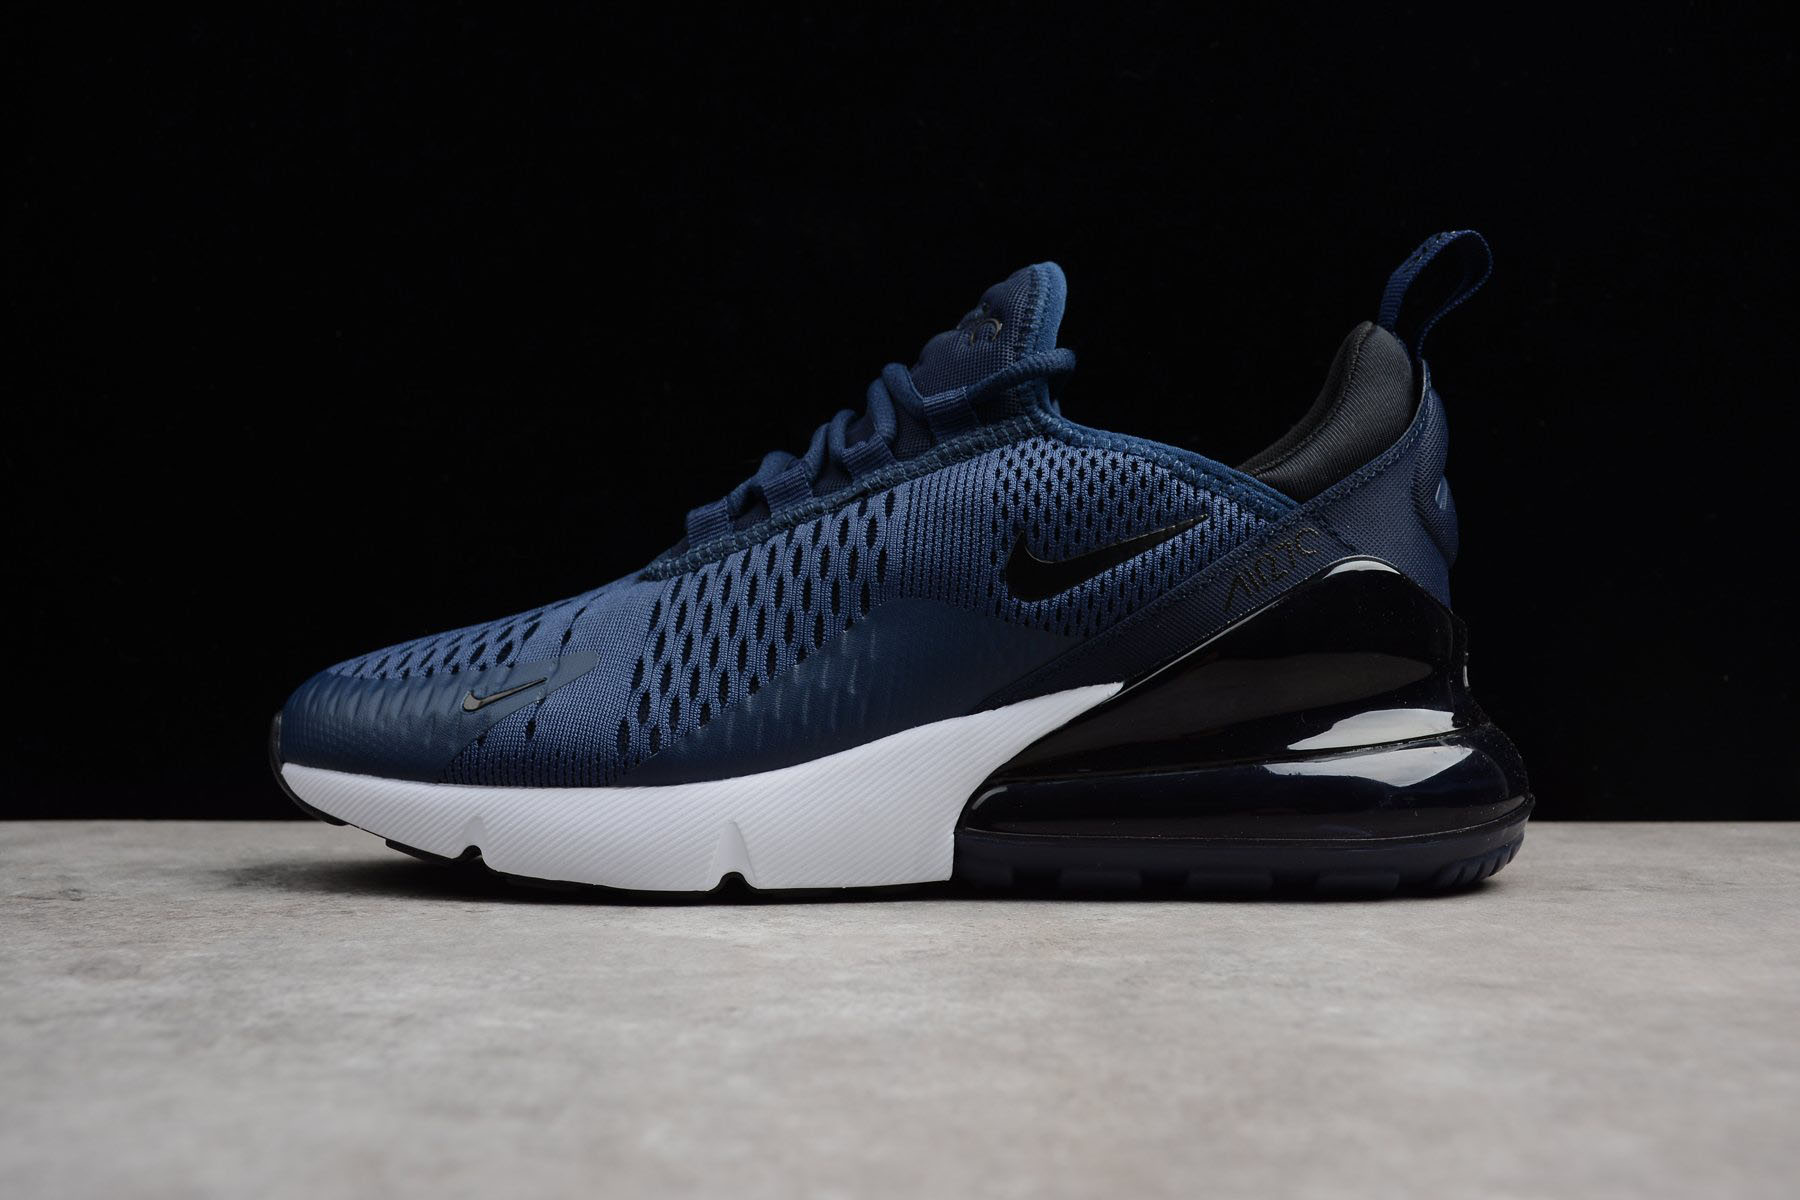 new arrival f9dc6 9485f Men s Size Nike Air Max 270 Midnight Navy Black-White AH8050-400